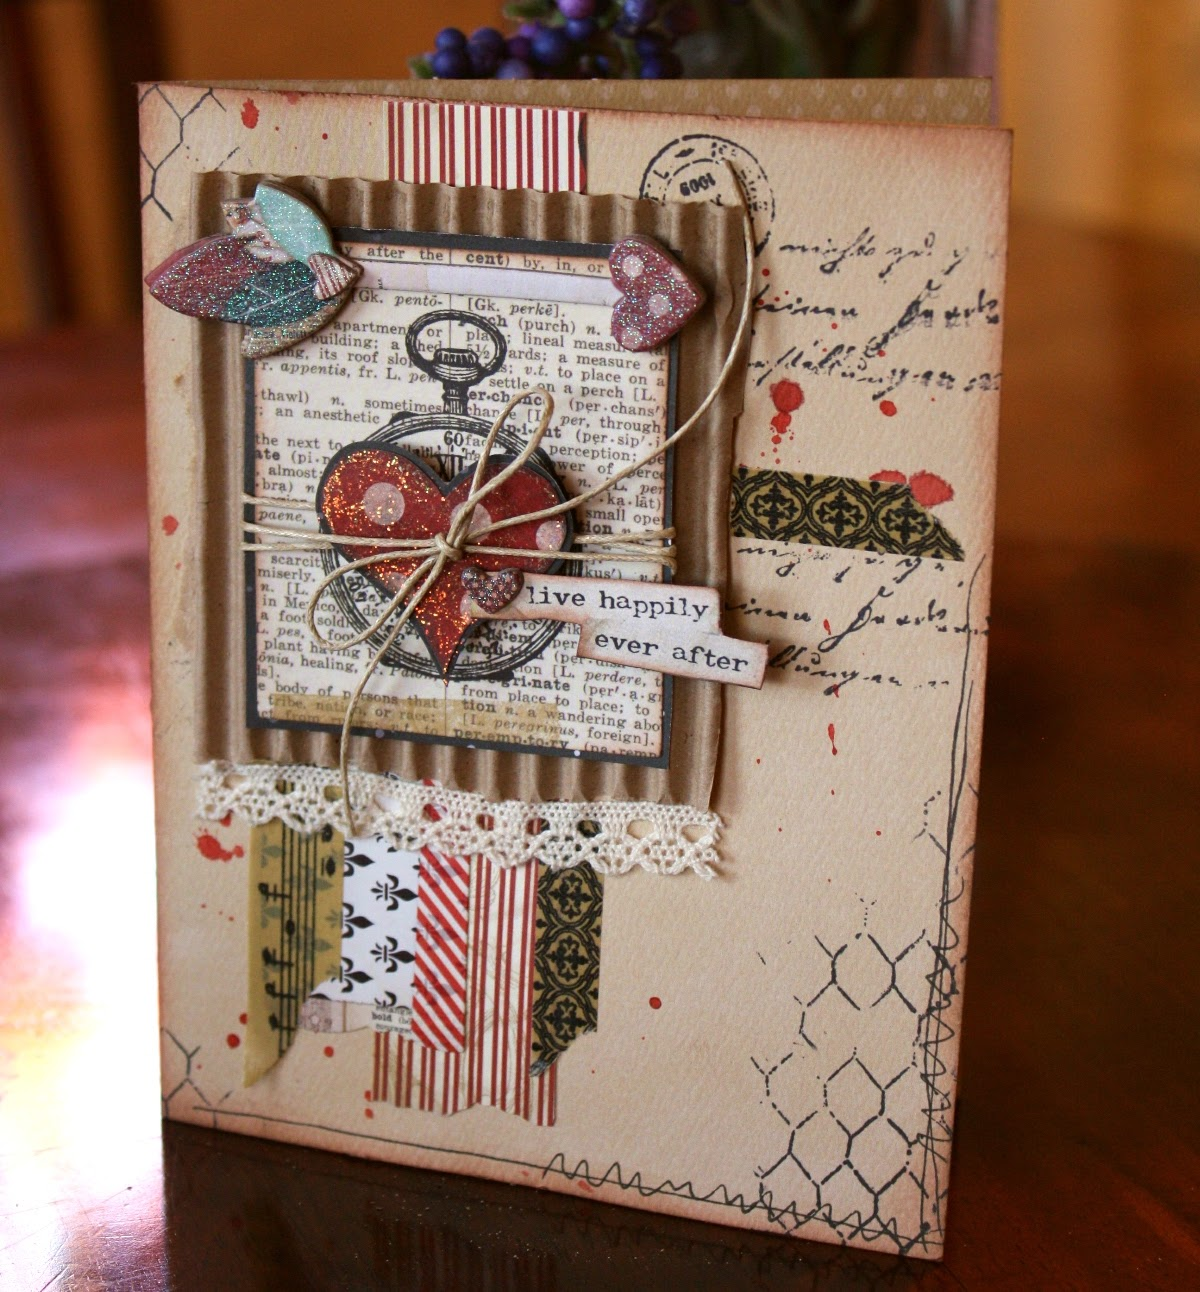 Heart Card by Gabrielle Pollacco using Bo Bunny's Star-Crossed paper and embellishment collection